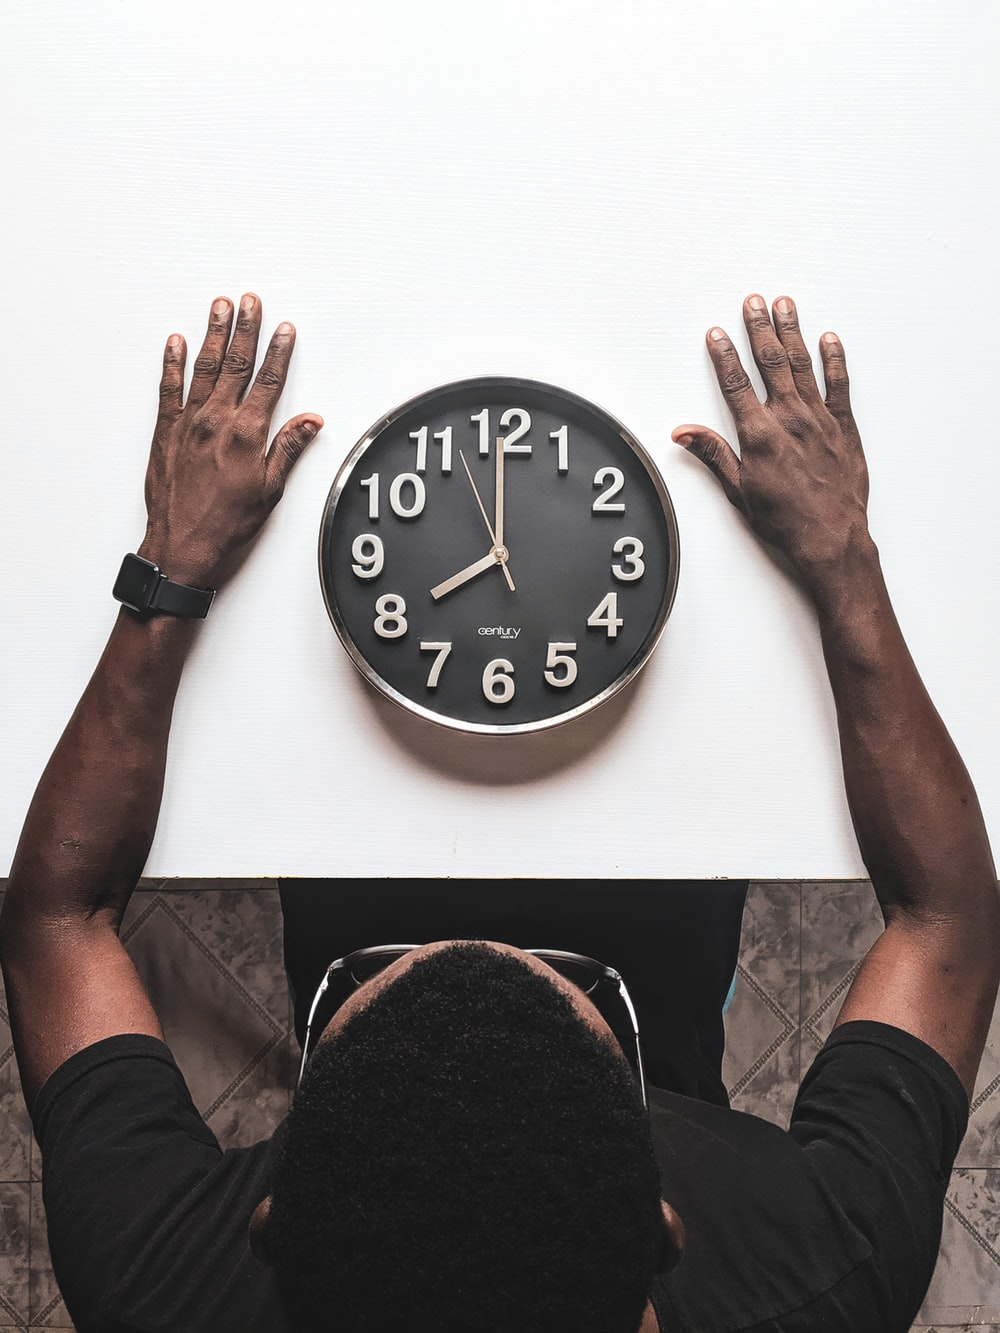 round black and white analog wall clock in front of man